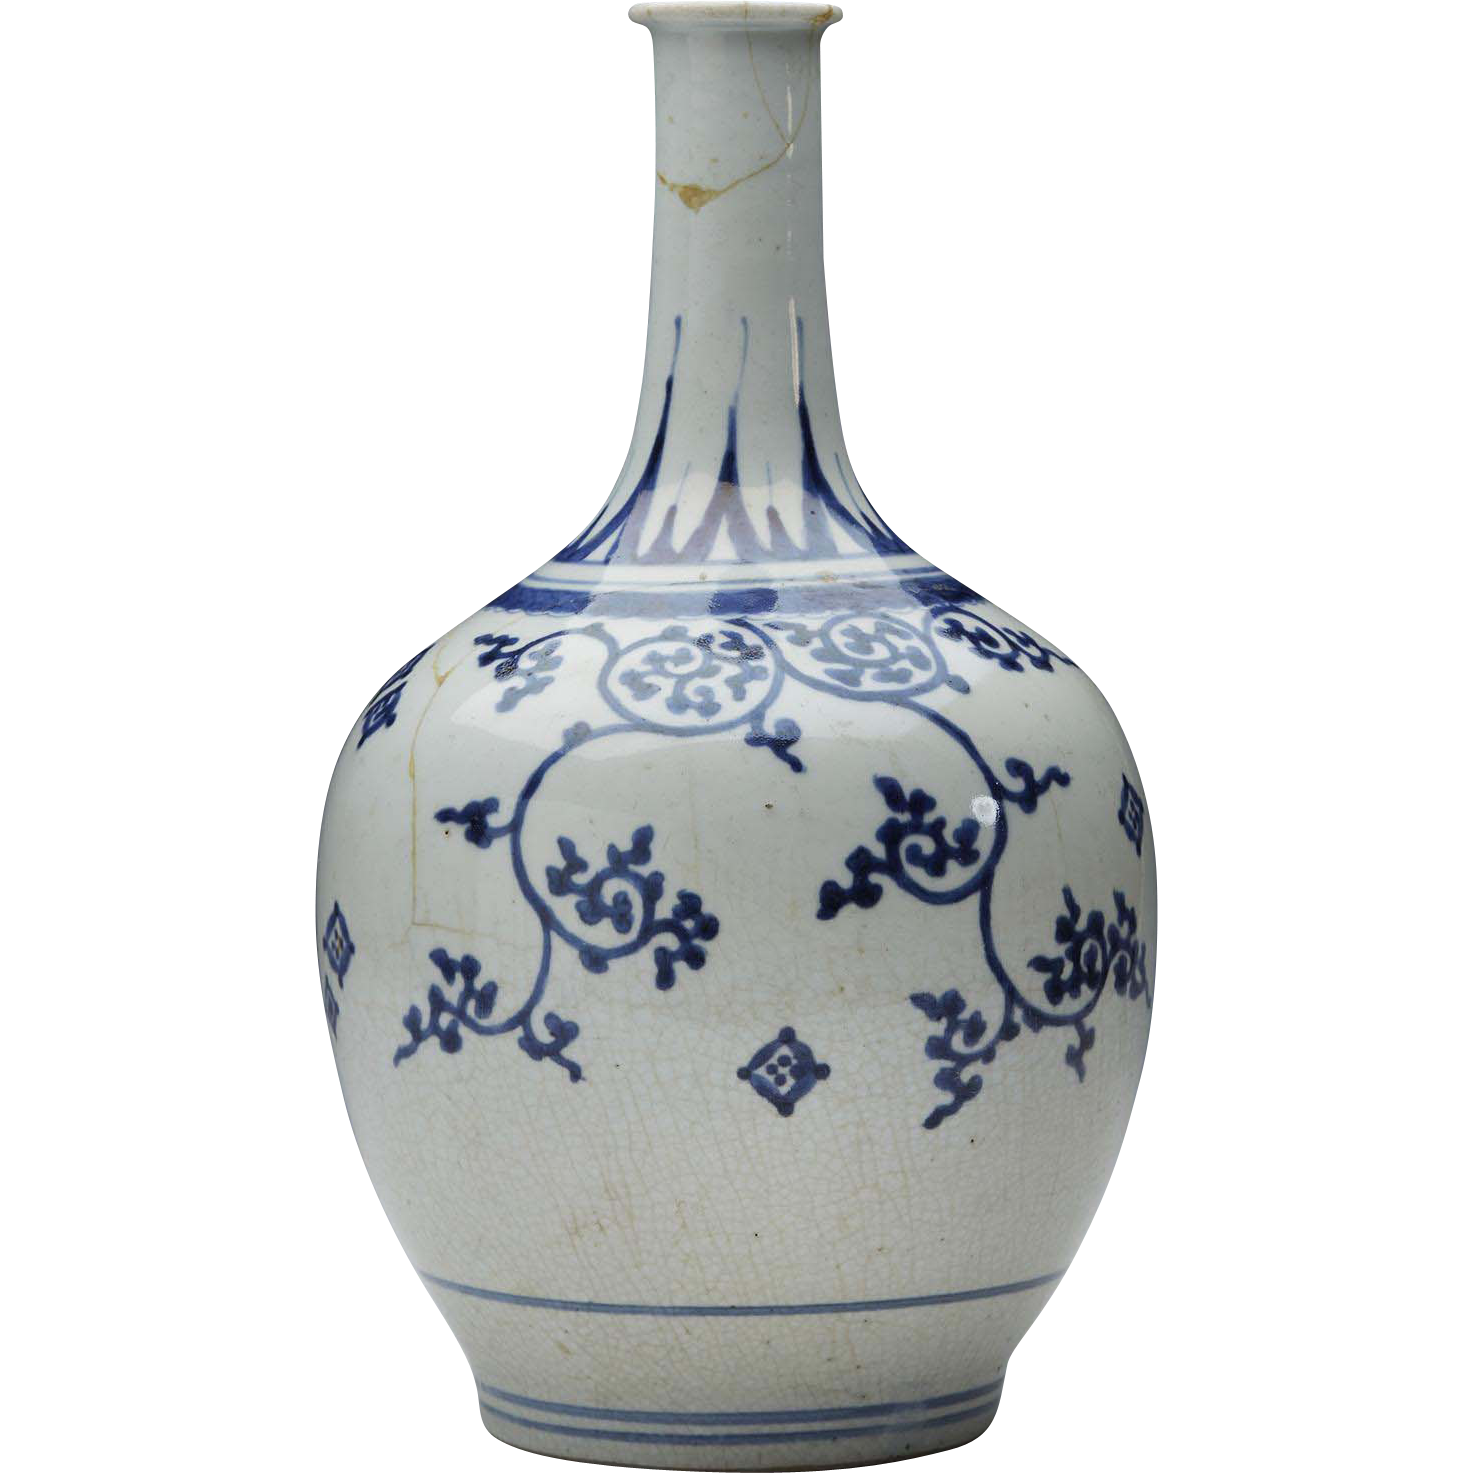 antique japanese imari porcelain blue white vase 17th c from xupes on rubylux. Black Bedroom Furniture Sets. Home Design Ideas